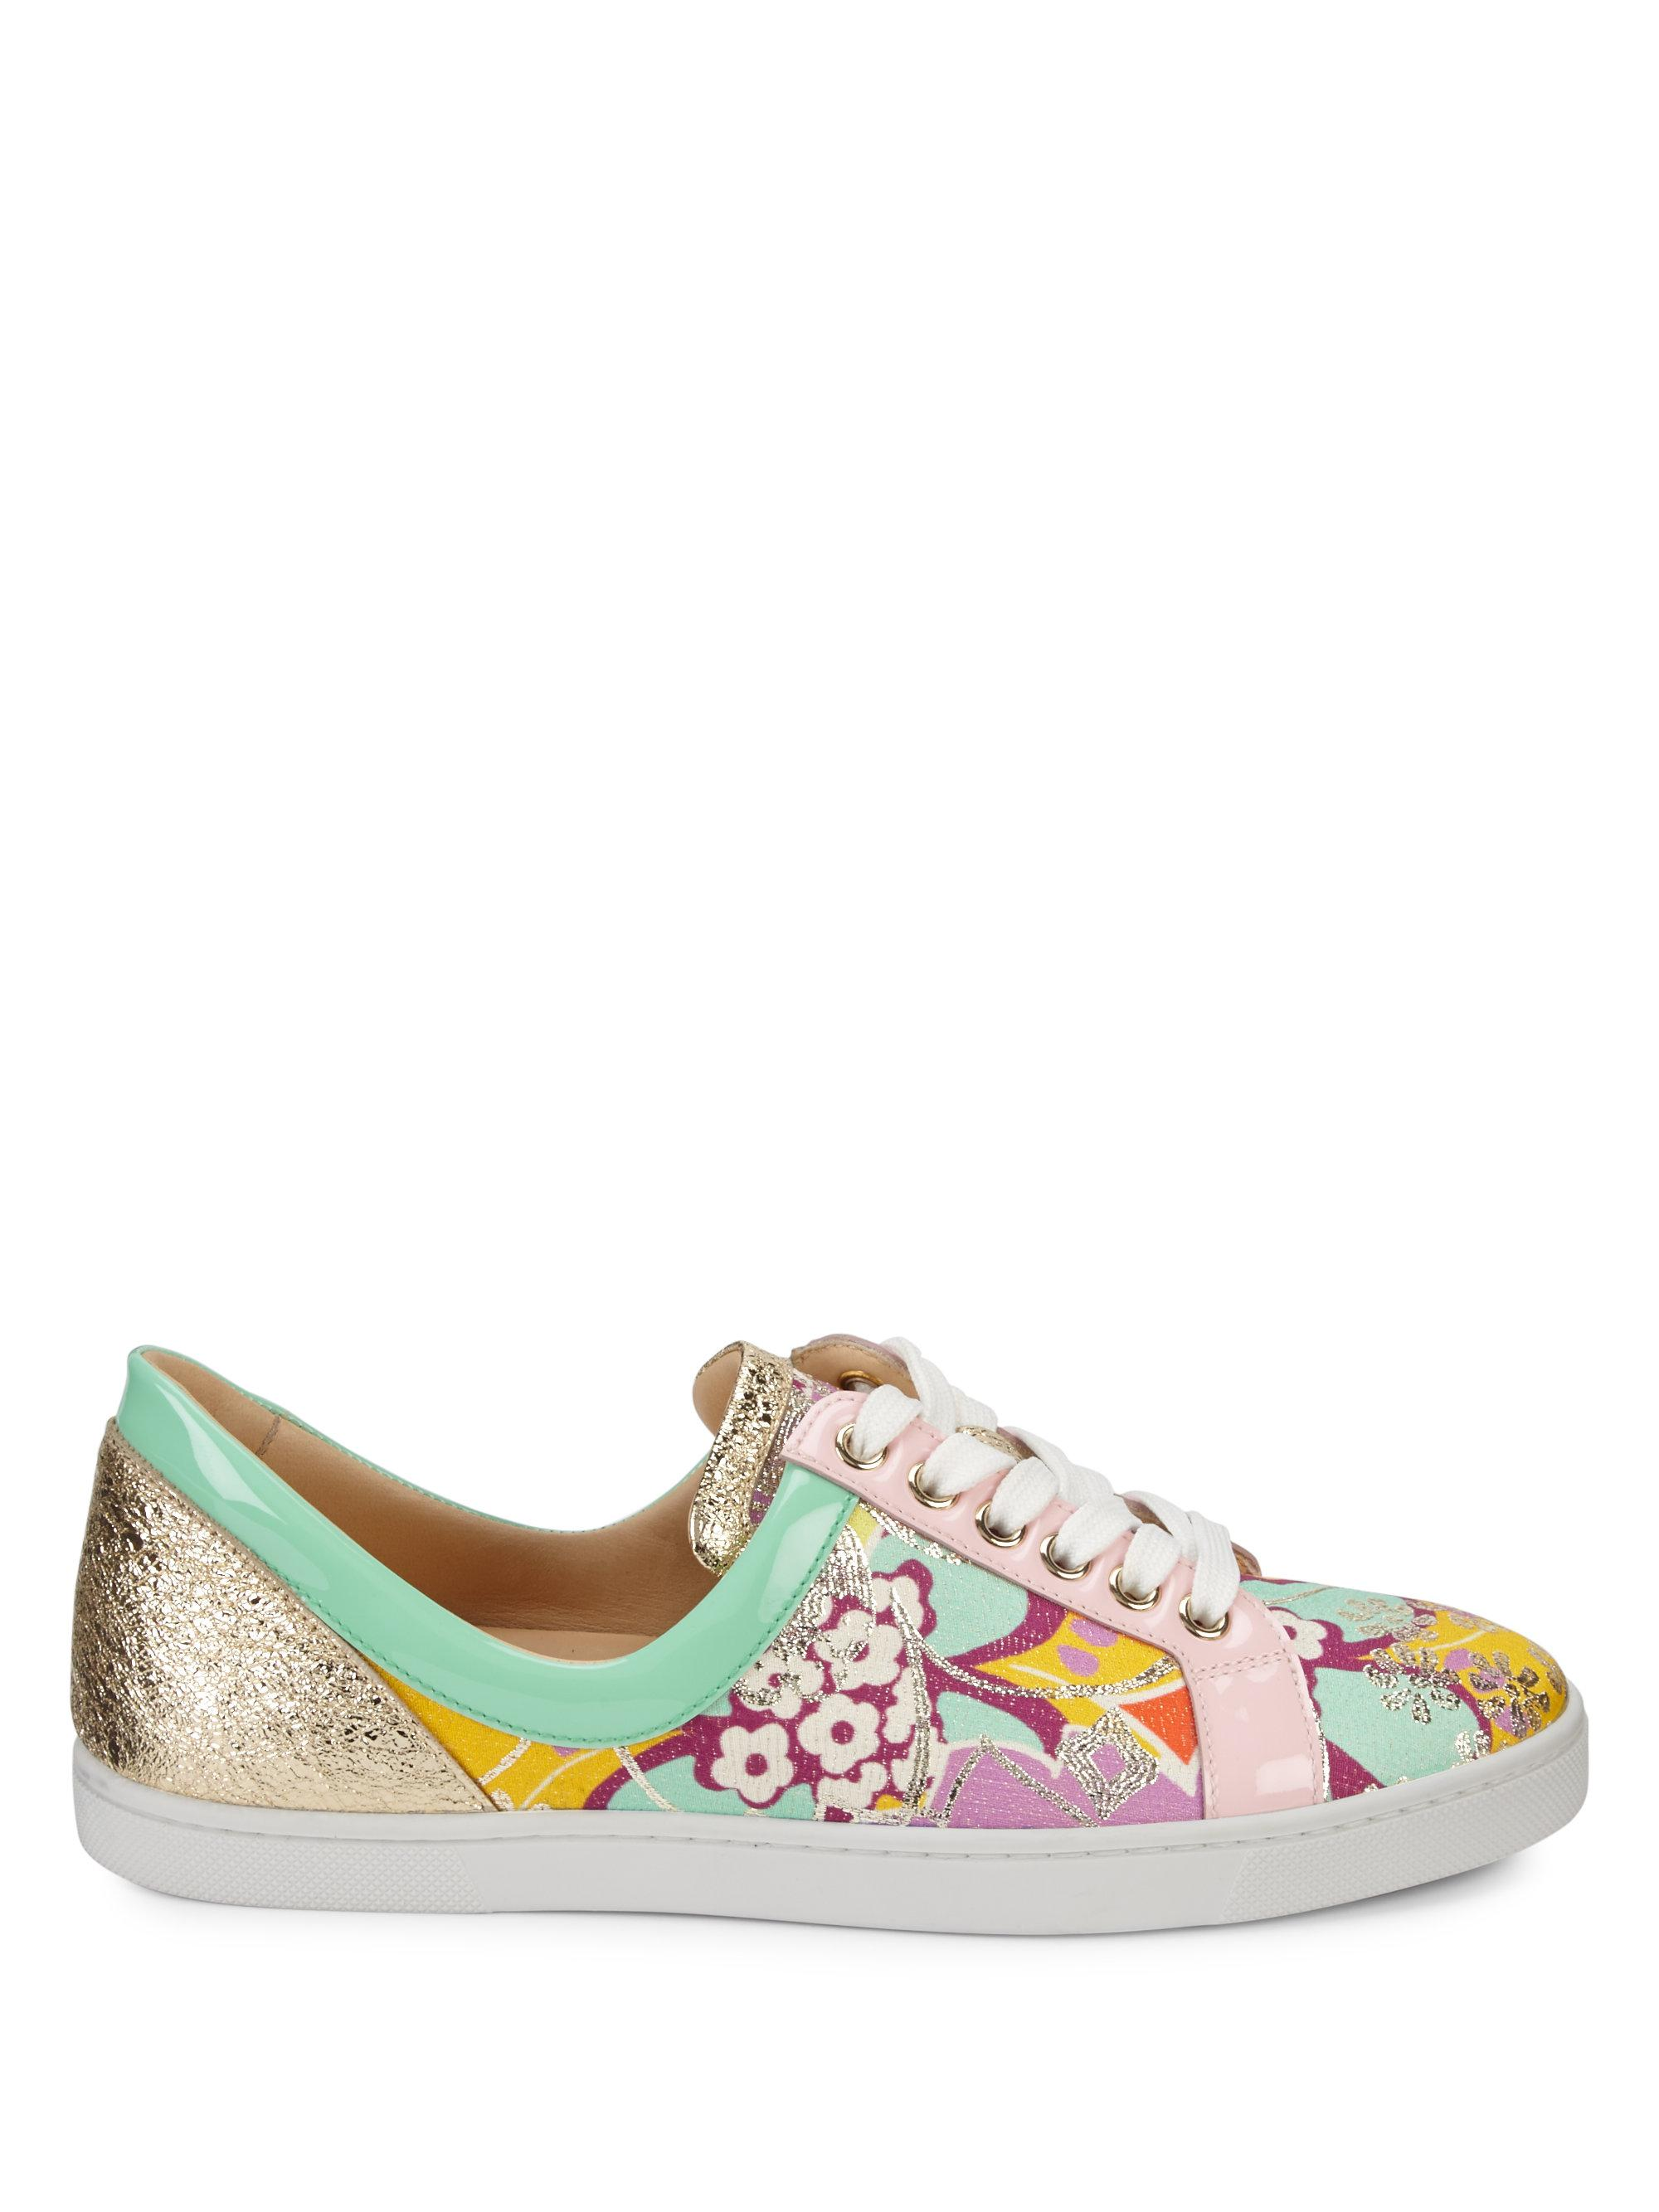 8660098da353 ... where can i buy lyst christian louboutin flamingirl glitter sneakers  01825 2df0a